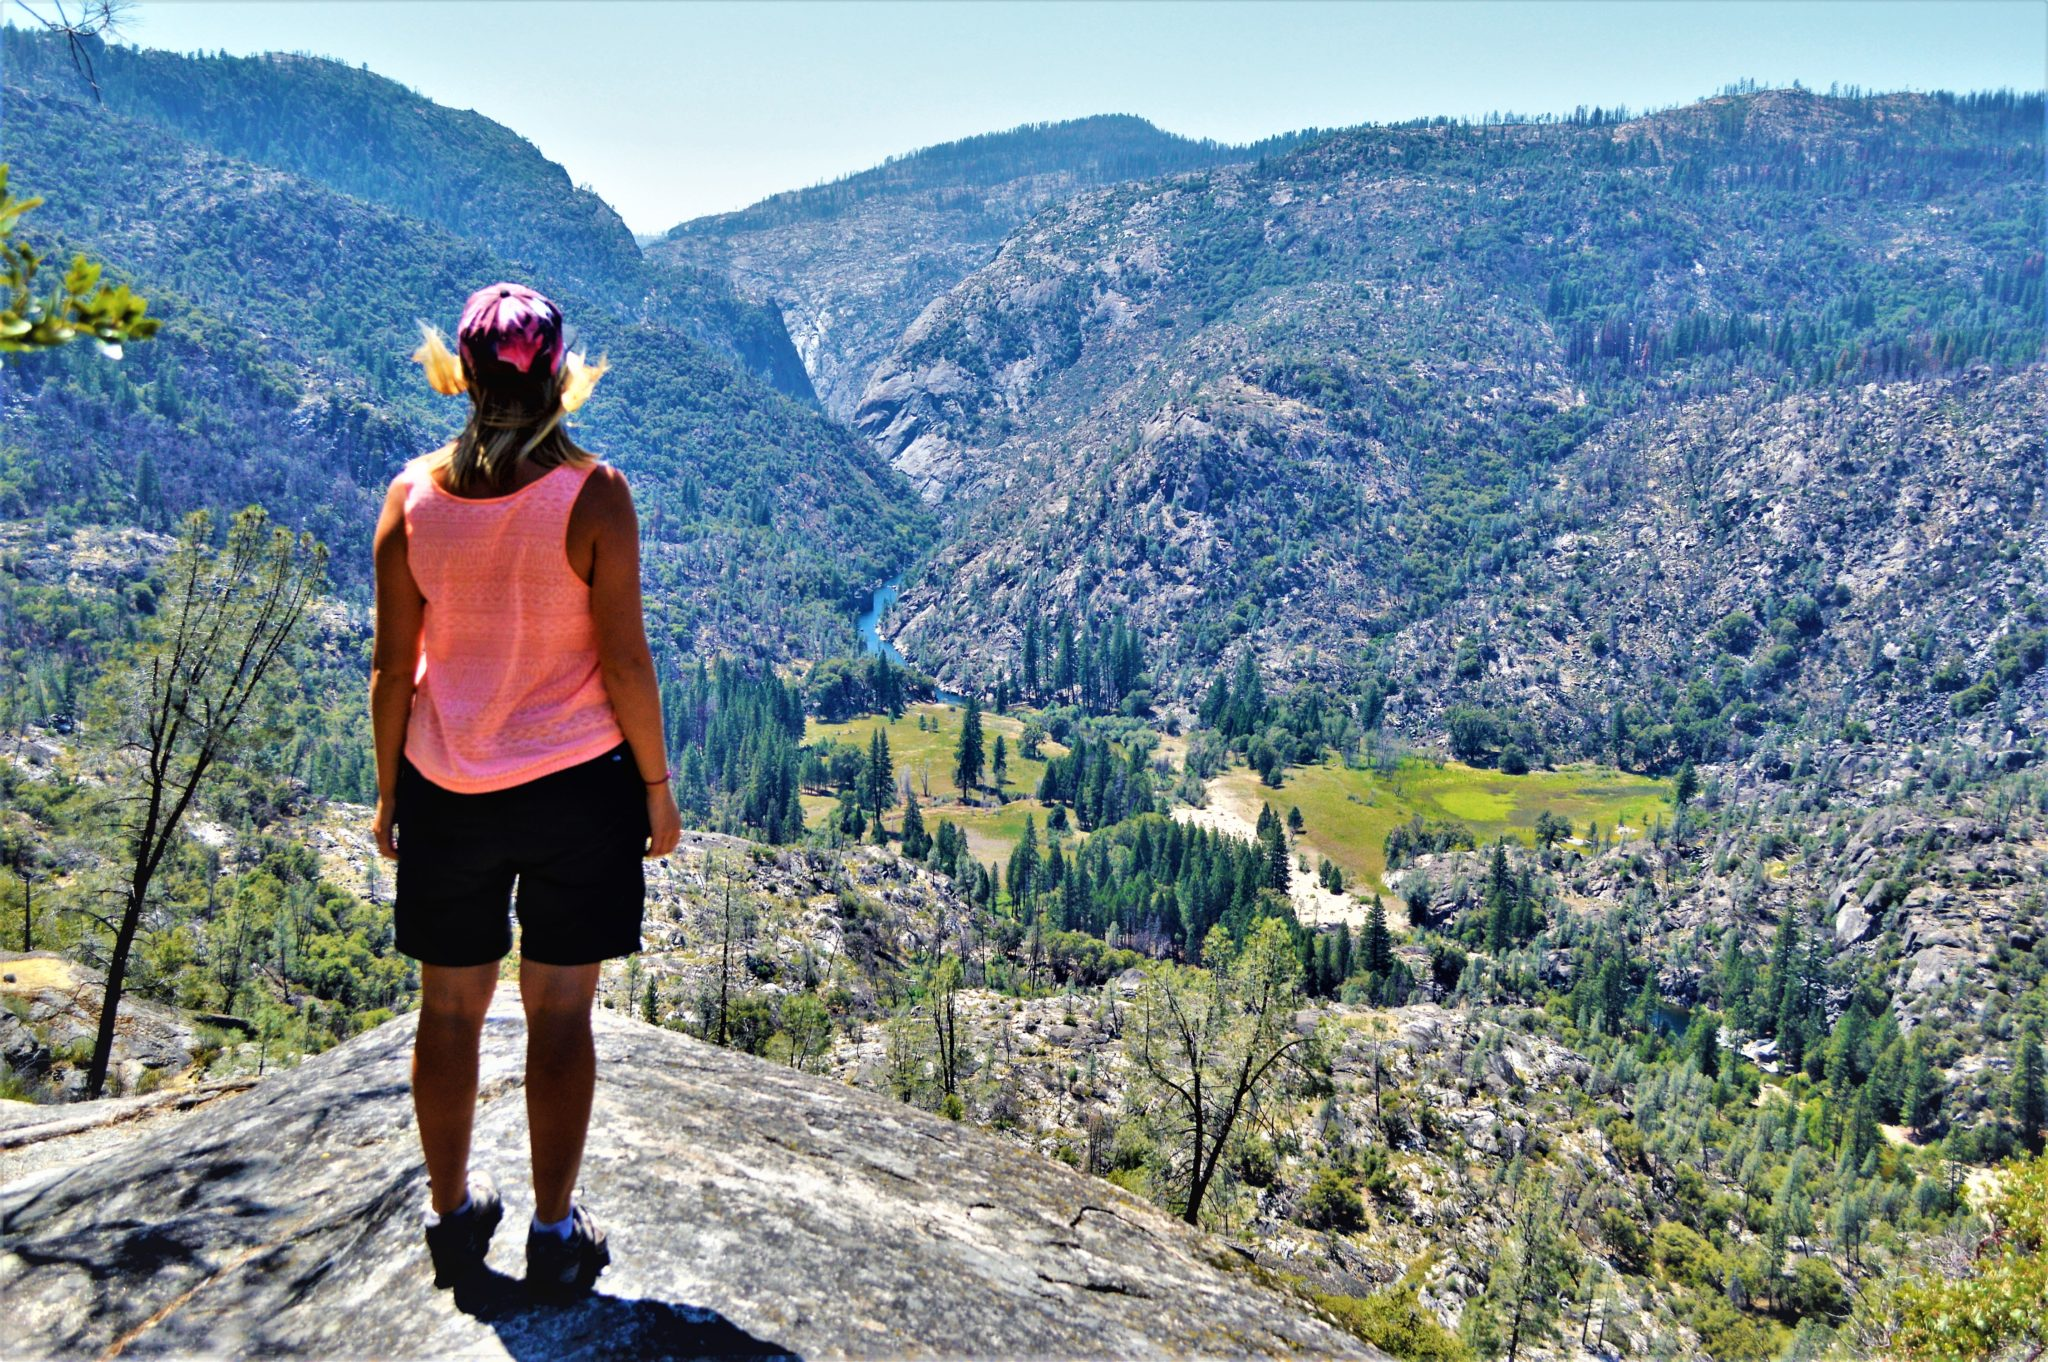 Standing at Hetch Hetchy Landscape, California